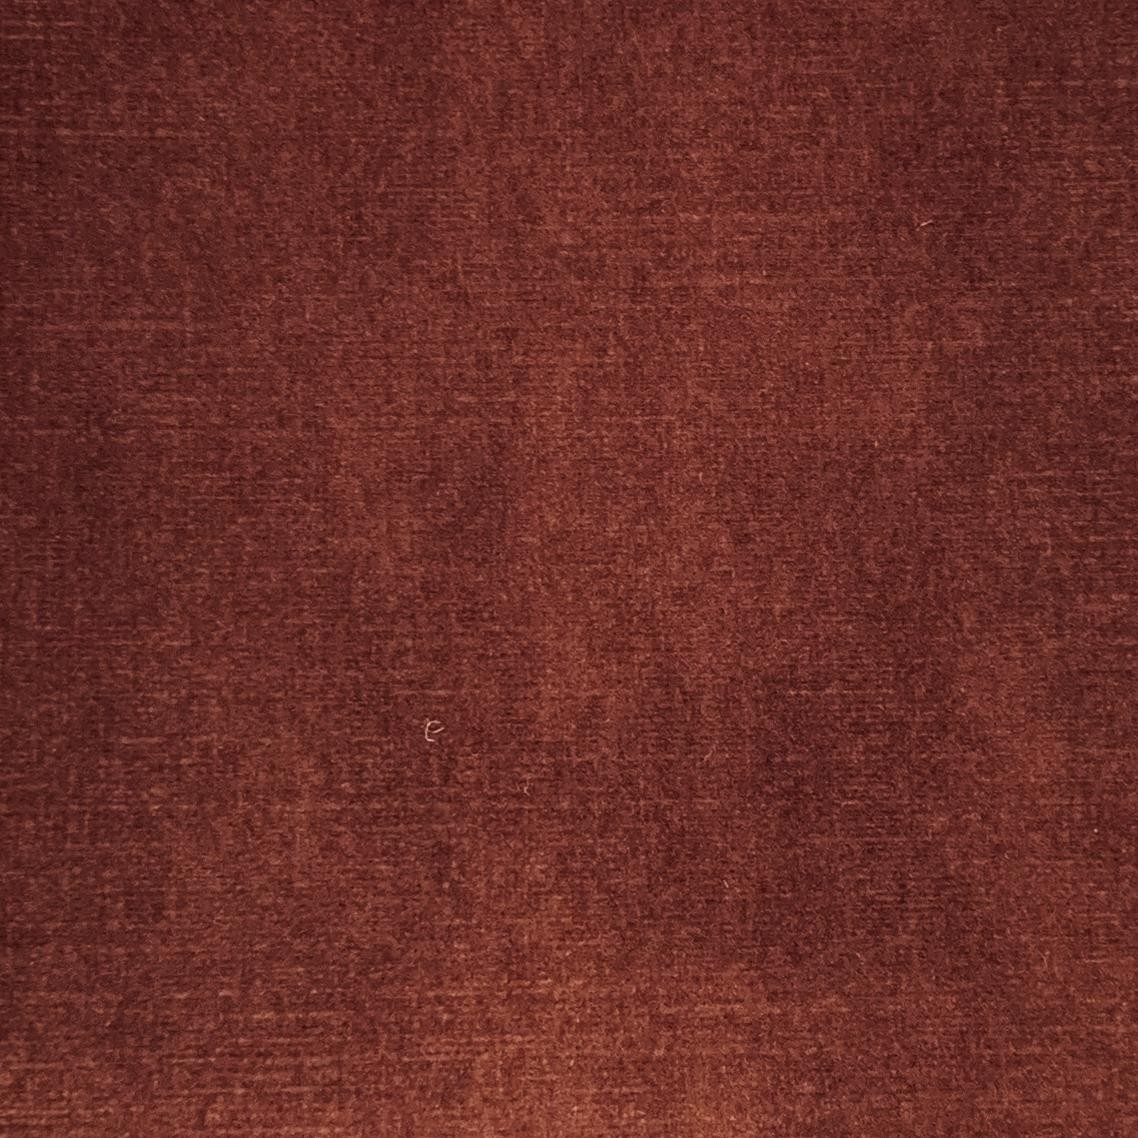 Umber Jewel Velvet Plain